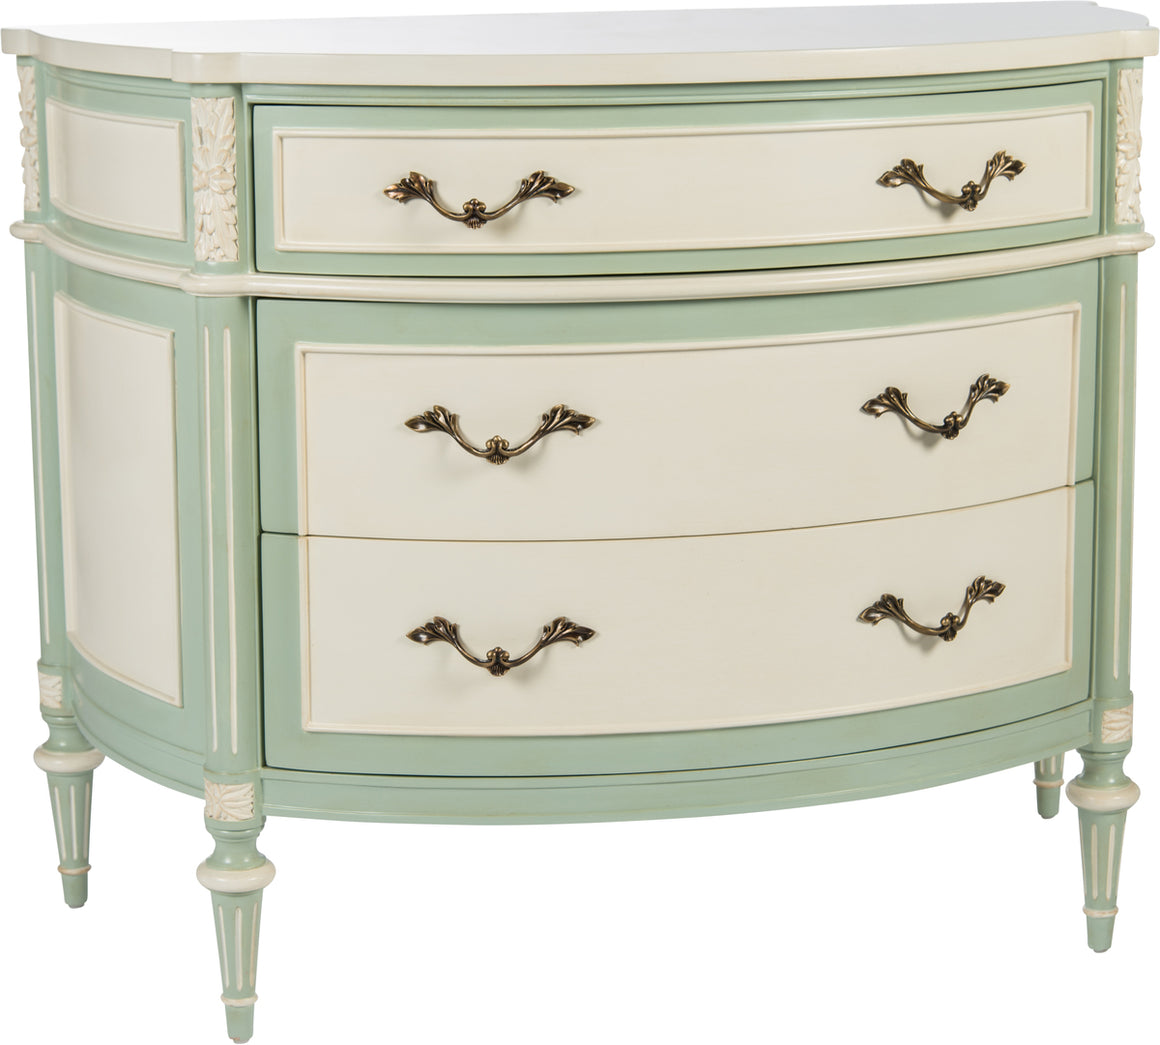 Antique Cream - Mint Commode